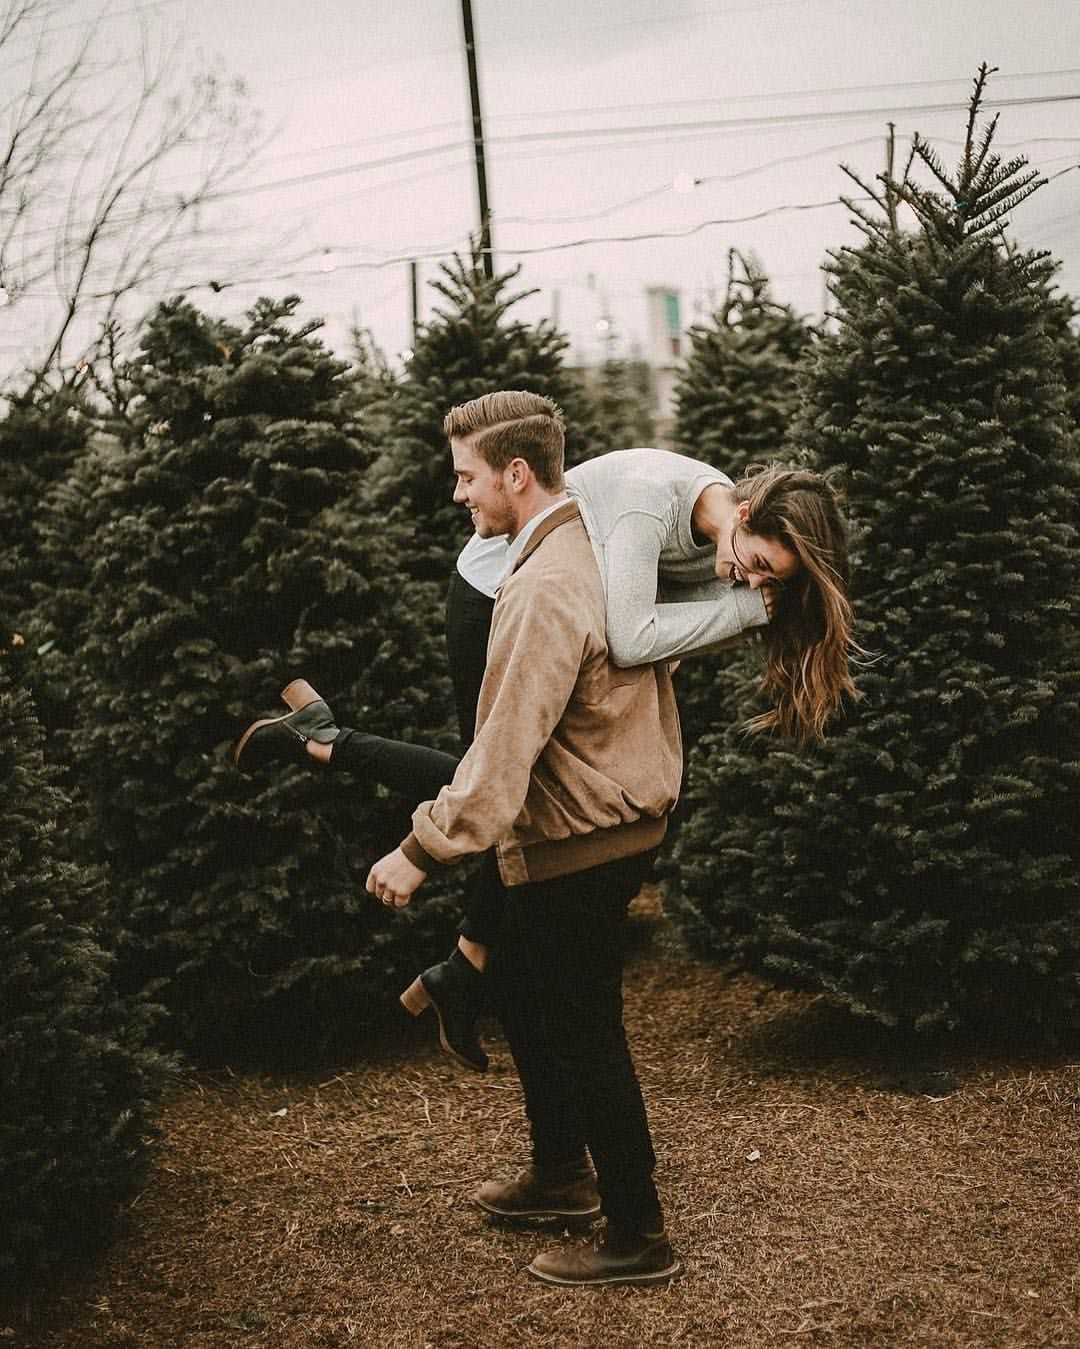 Date Day. Picking a tree, laughing. Hanging out. Want this with U.